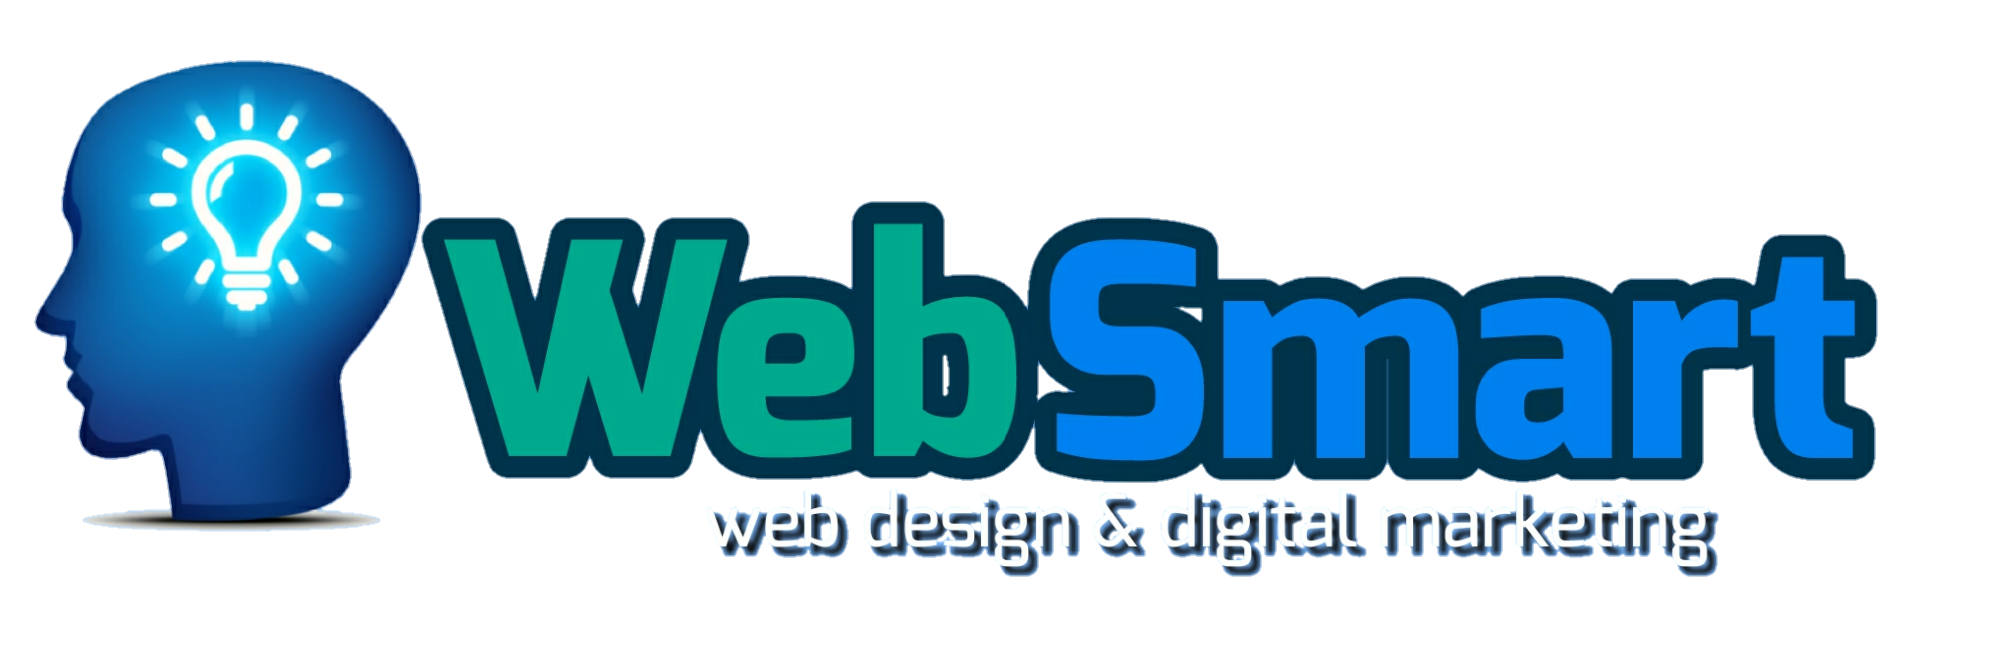 Websmart Advanced Web Design